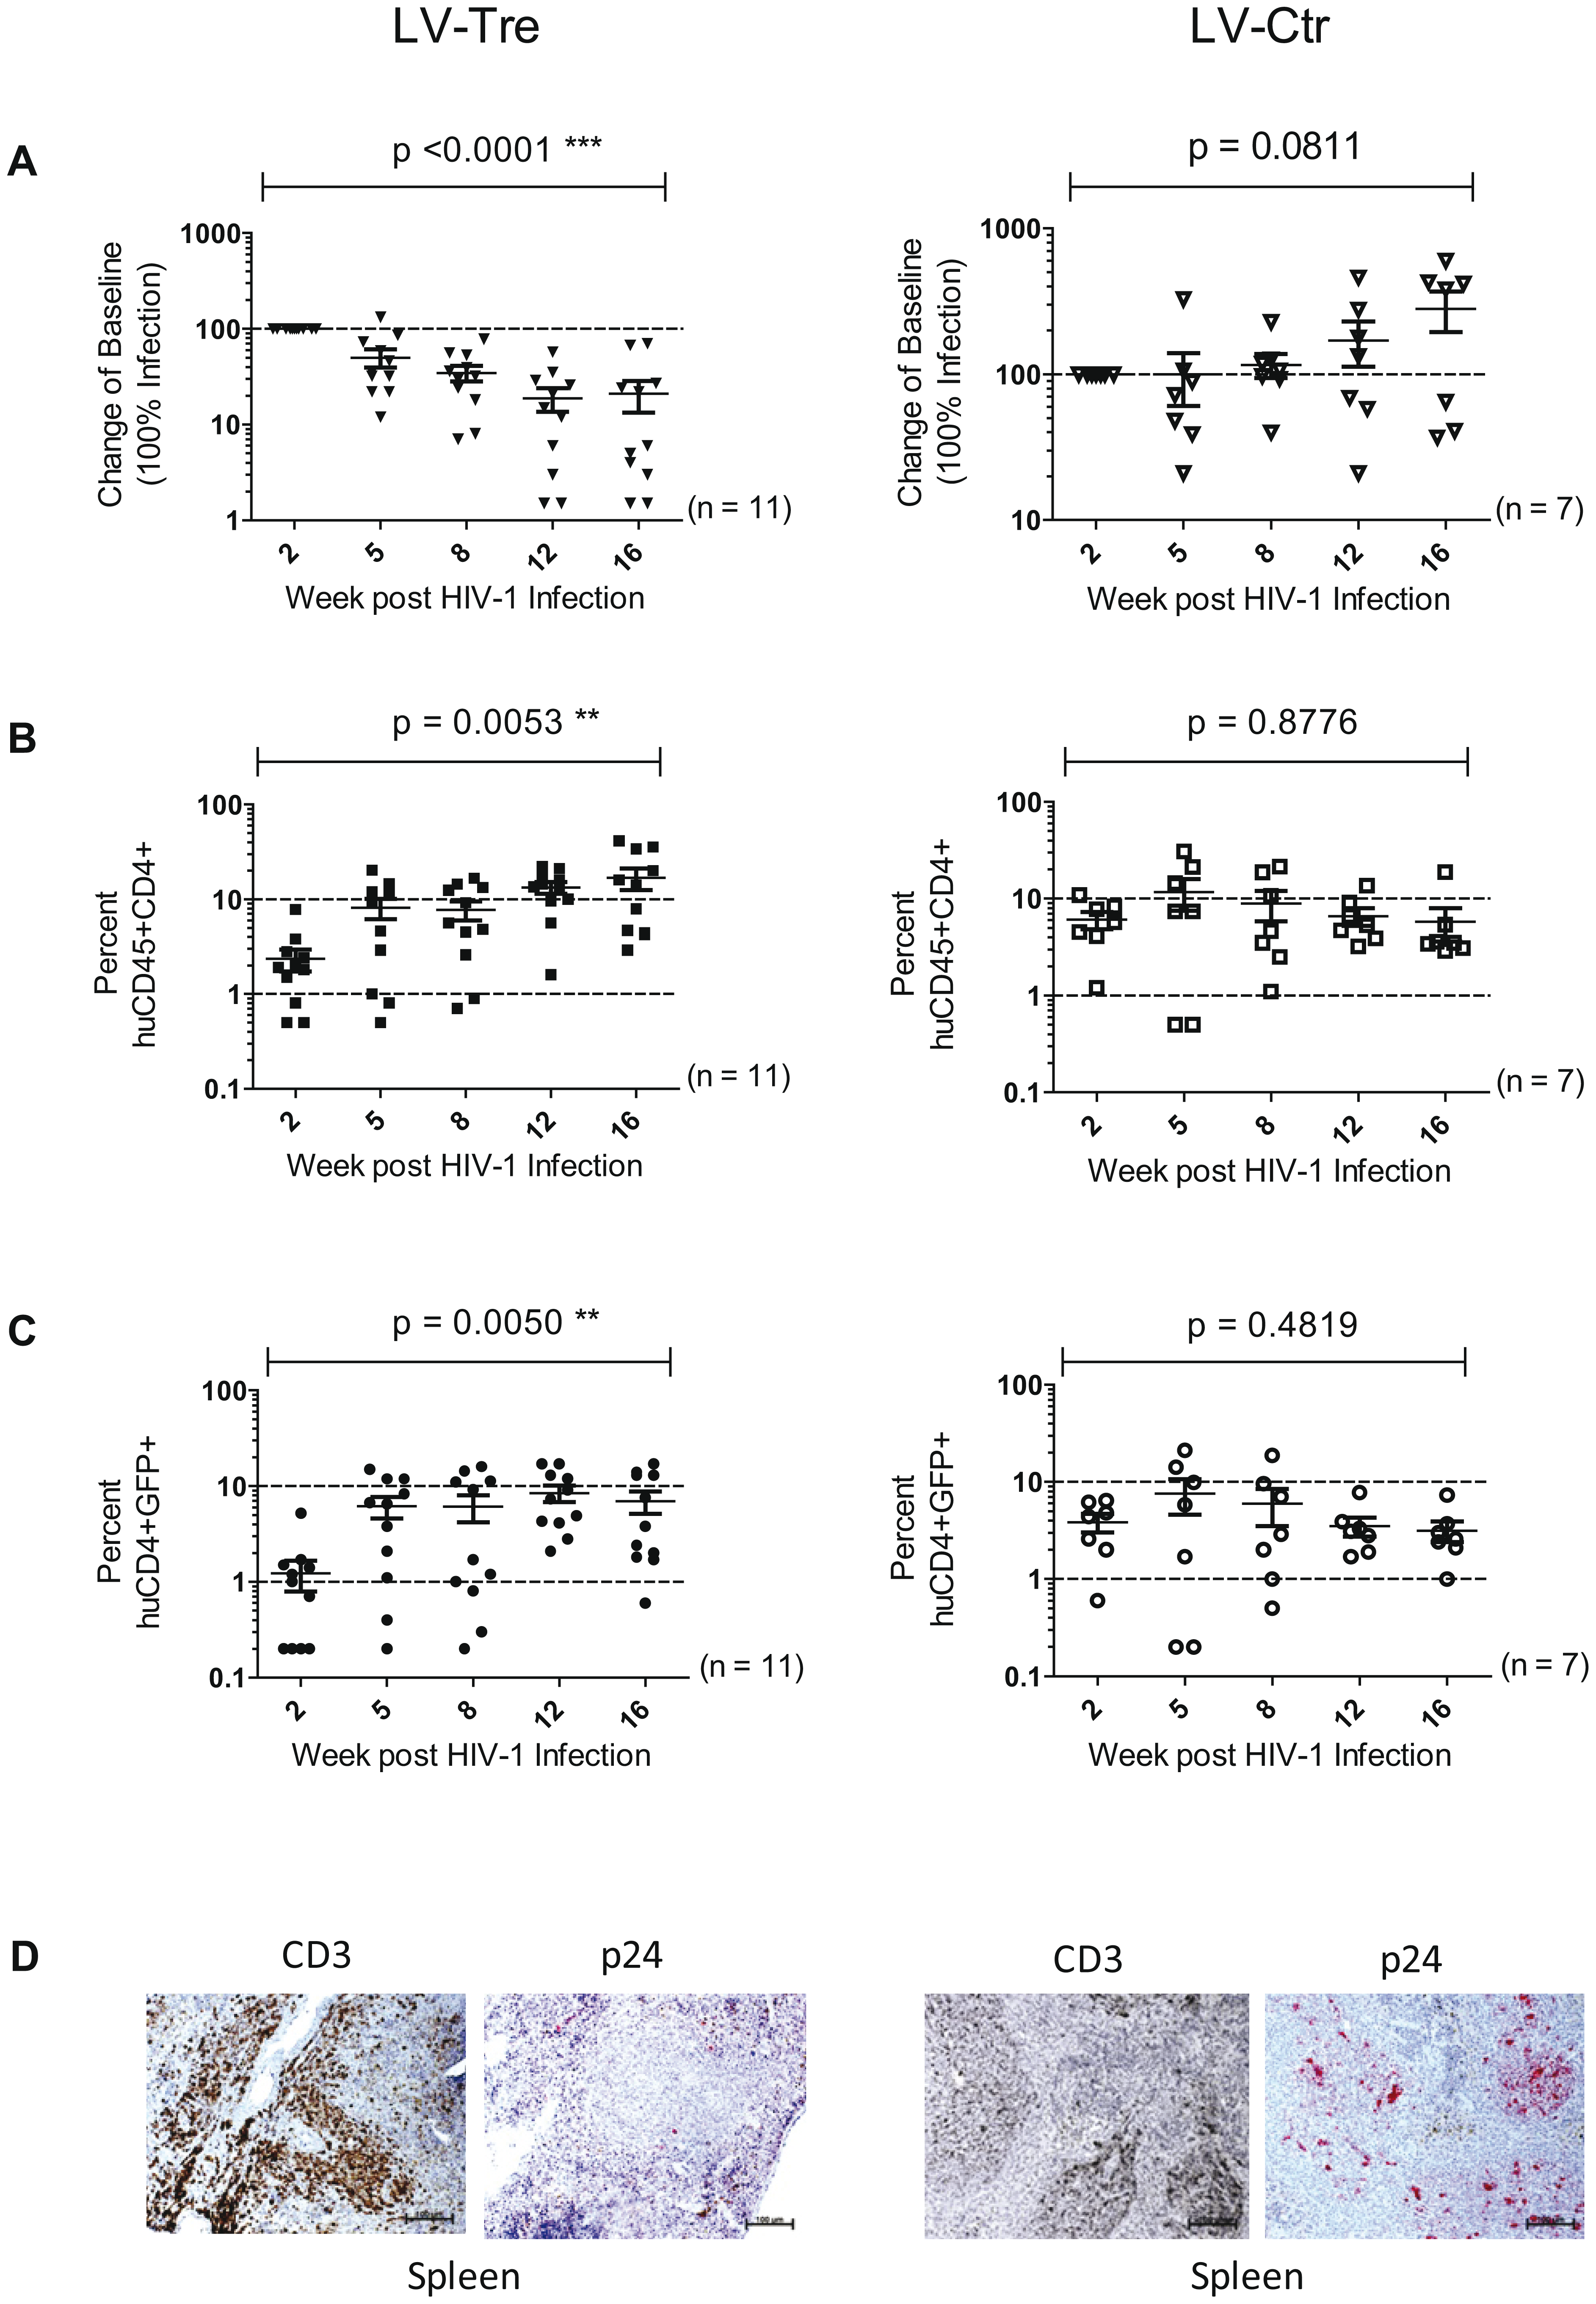 Analysis of the HIV-1 infected mice engrafted with LV-transduced (LV-Tre or LV-Ctr) unselected human CD4<sup>+</sup> T cell pools.